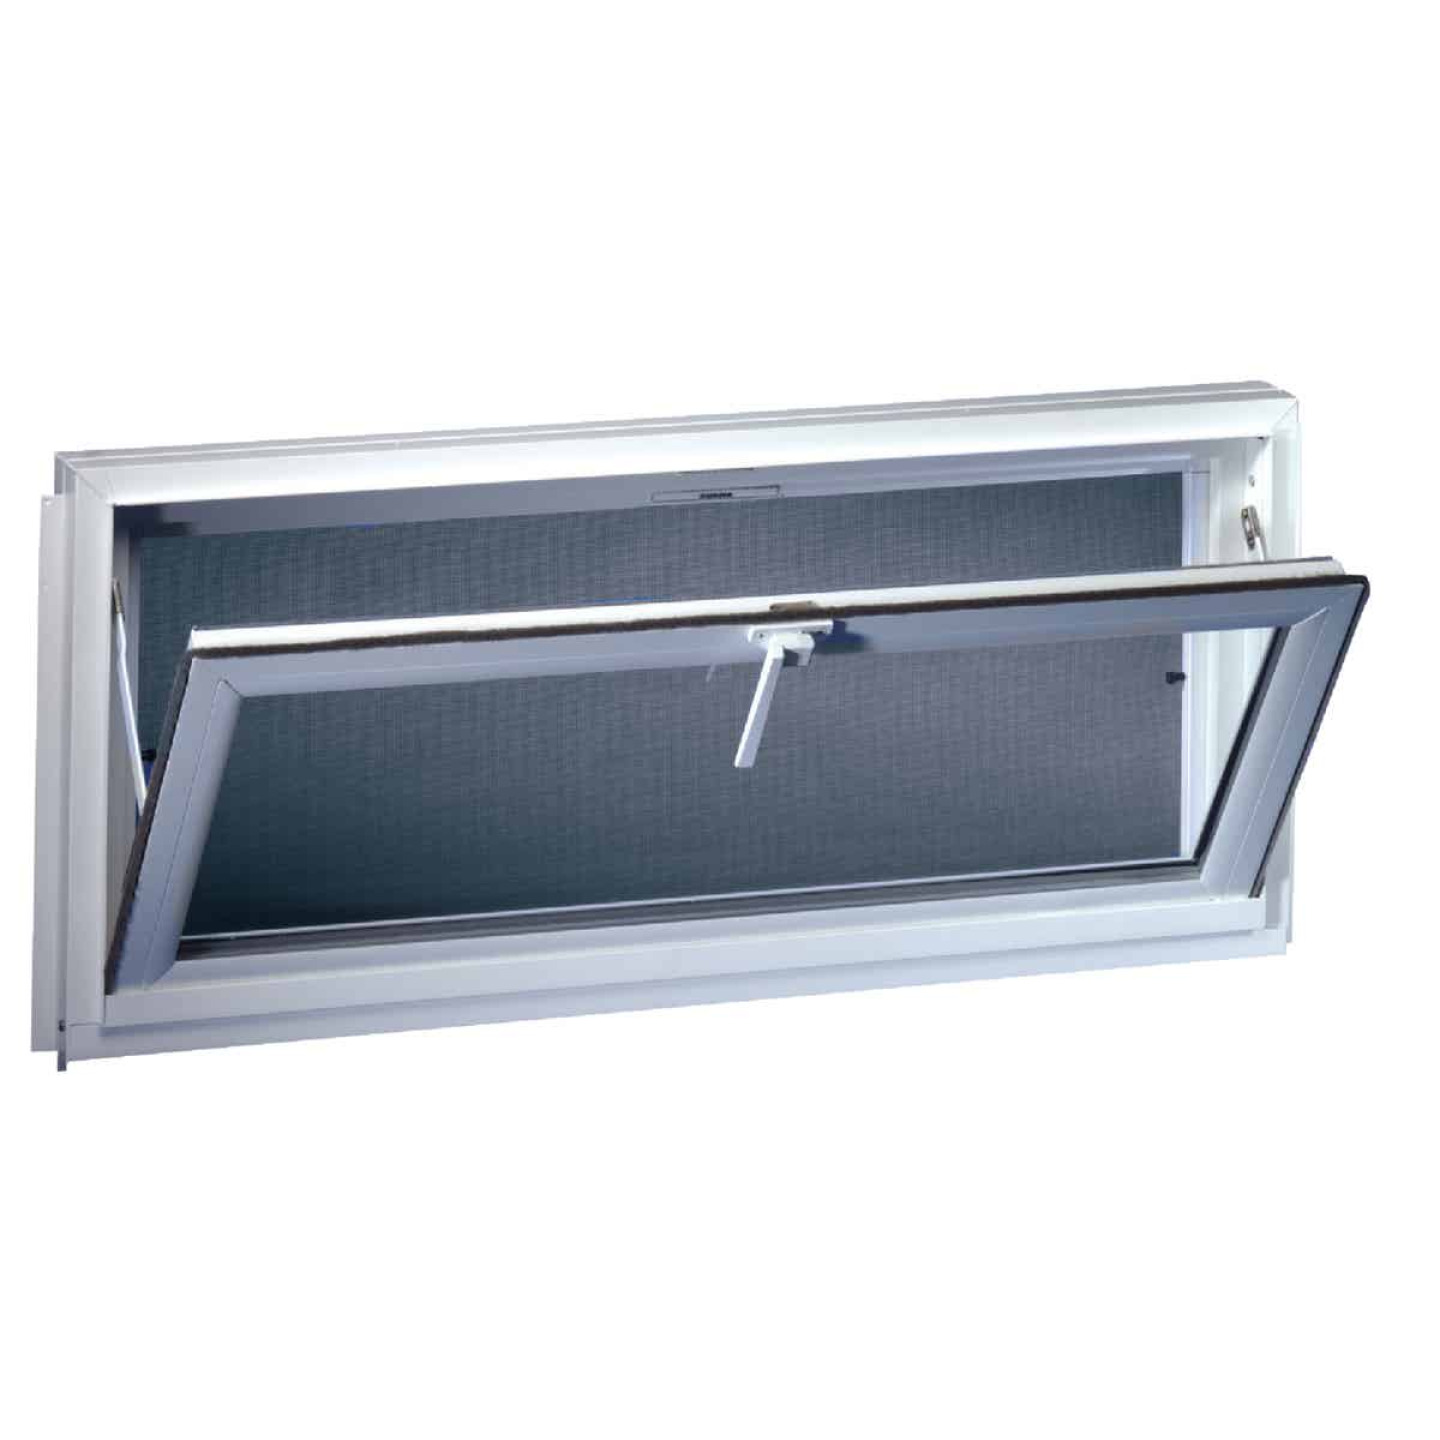 Northview Hemlock Hopper 32 In. W x 19-1/4 In. H White PVC Basement Window Image 1